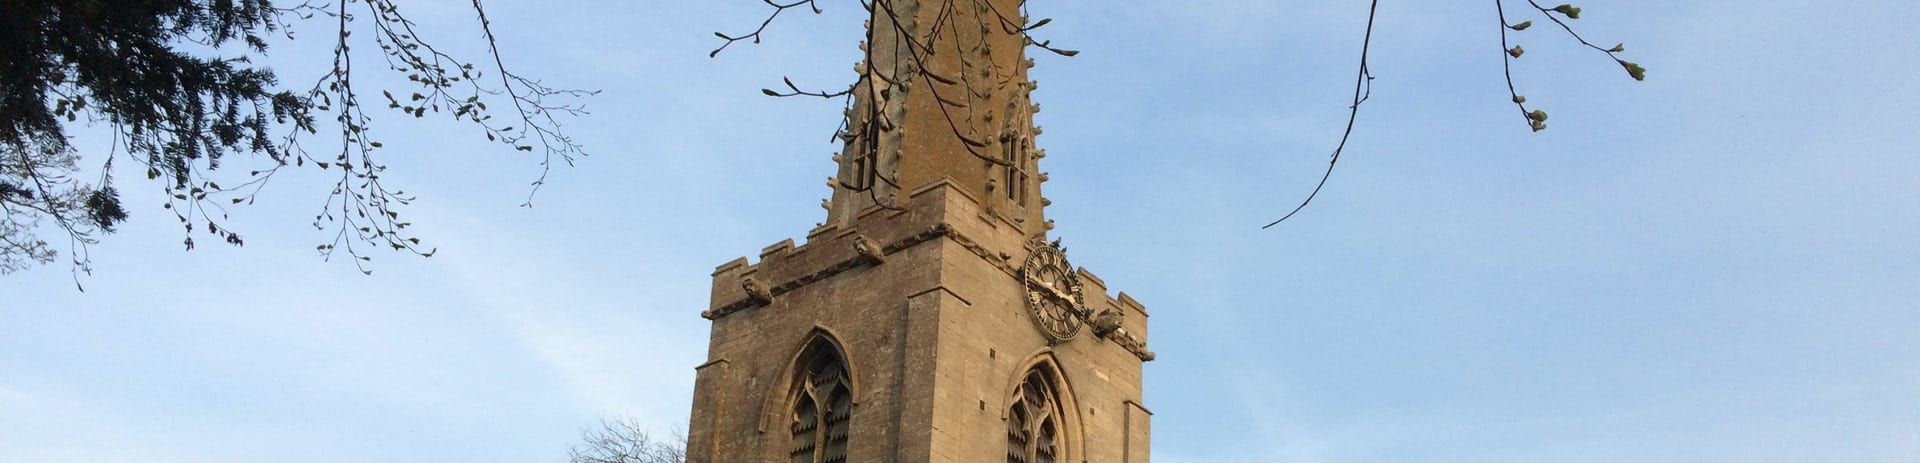 sutterton parish church spire